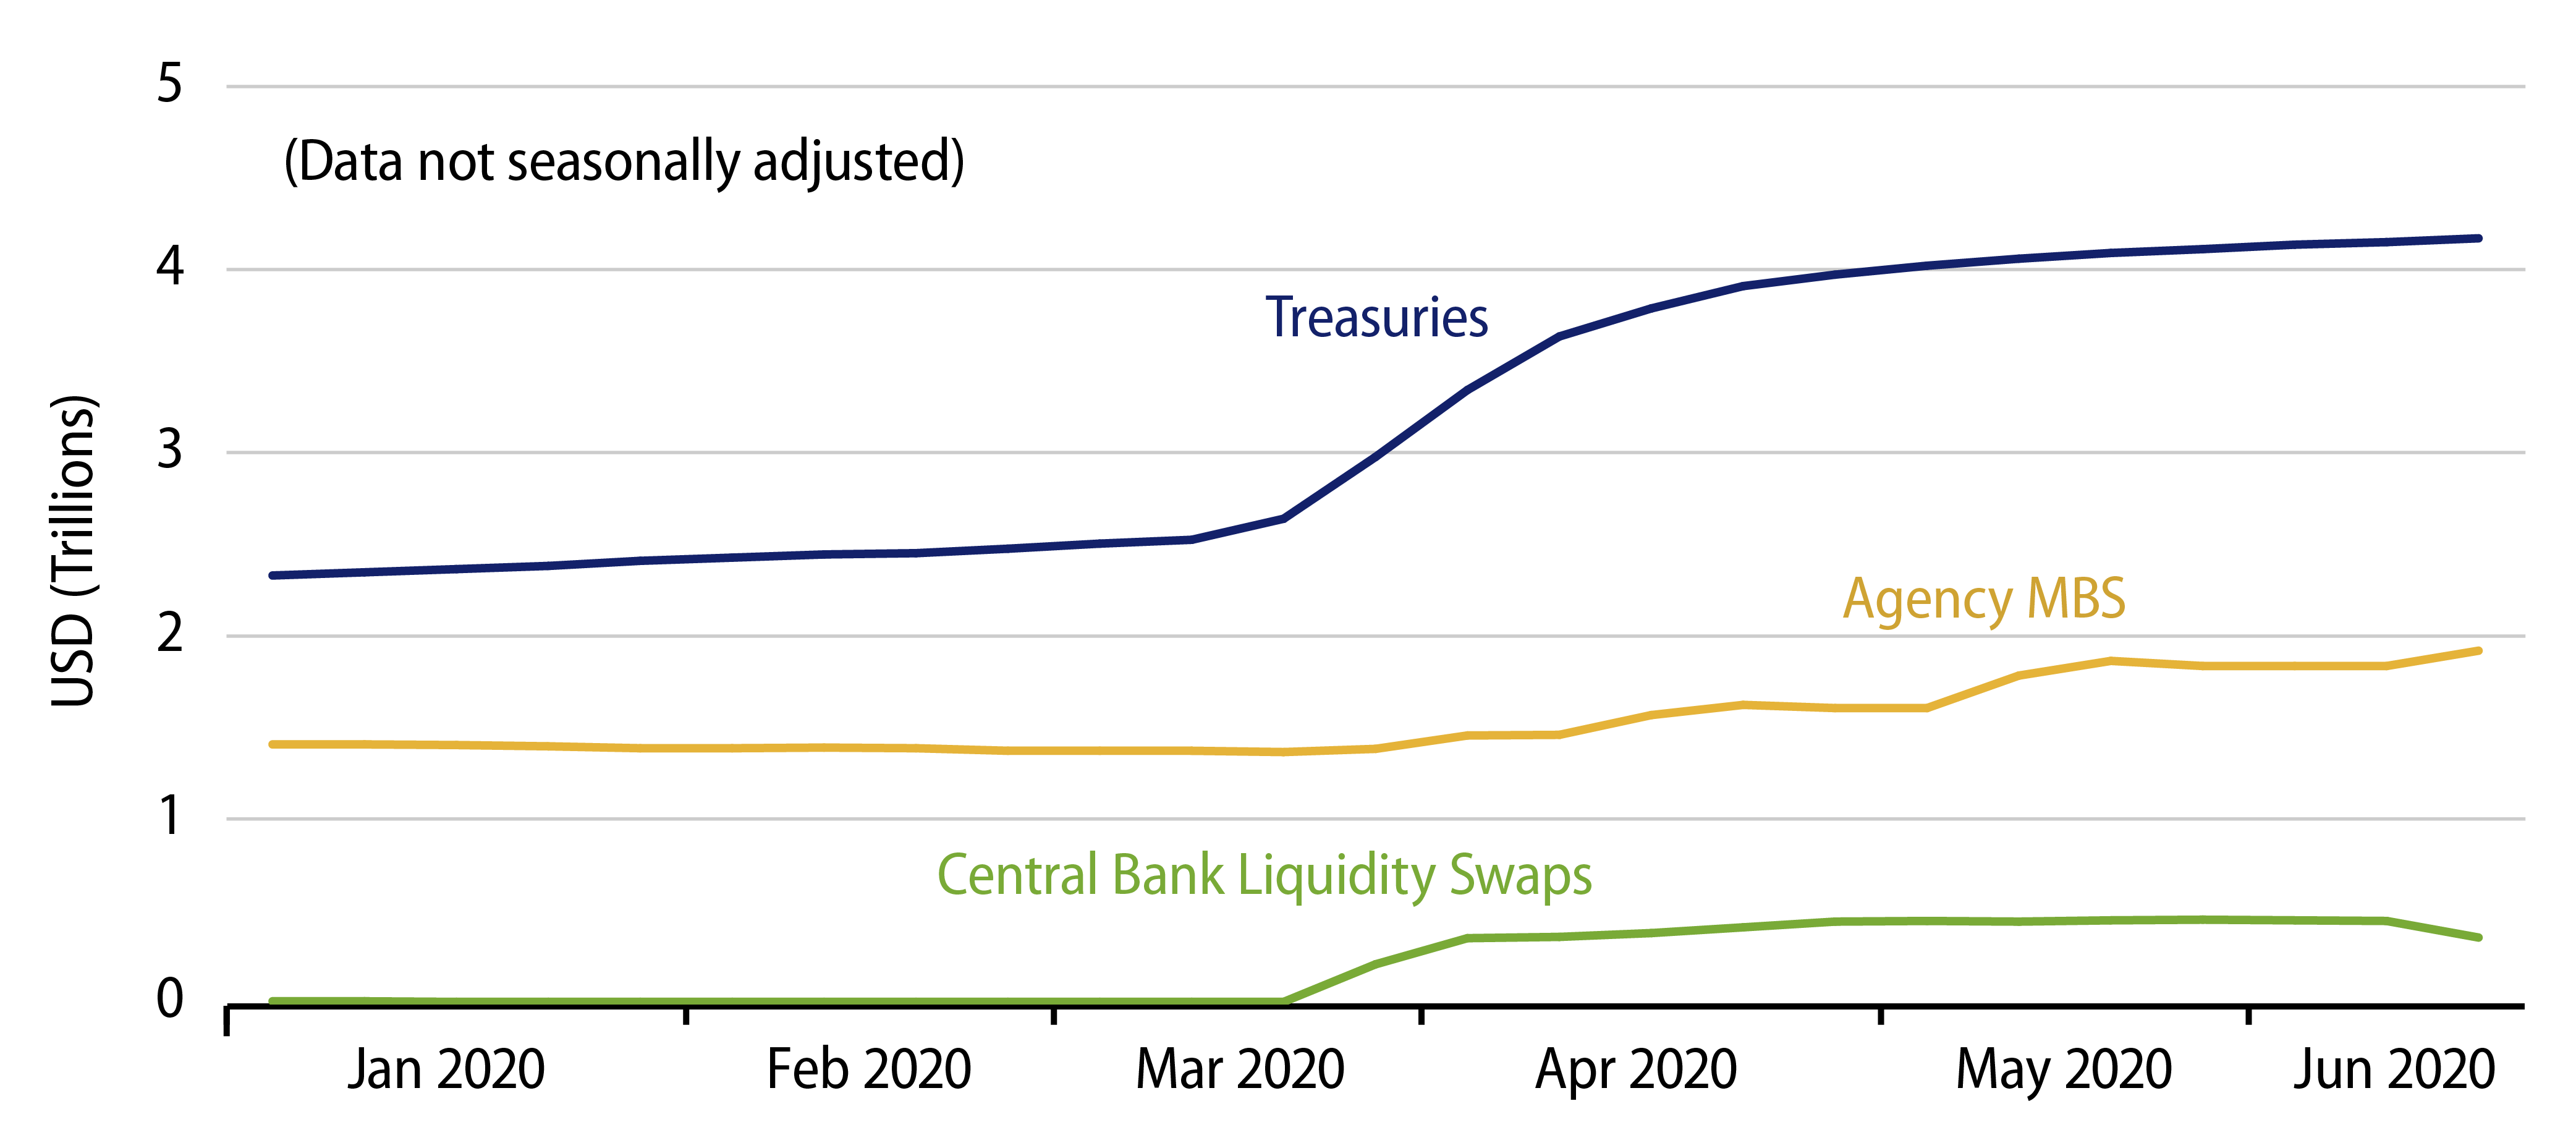 Conventional Provisions of Liquidity During COVID Crisis